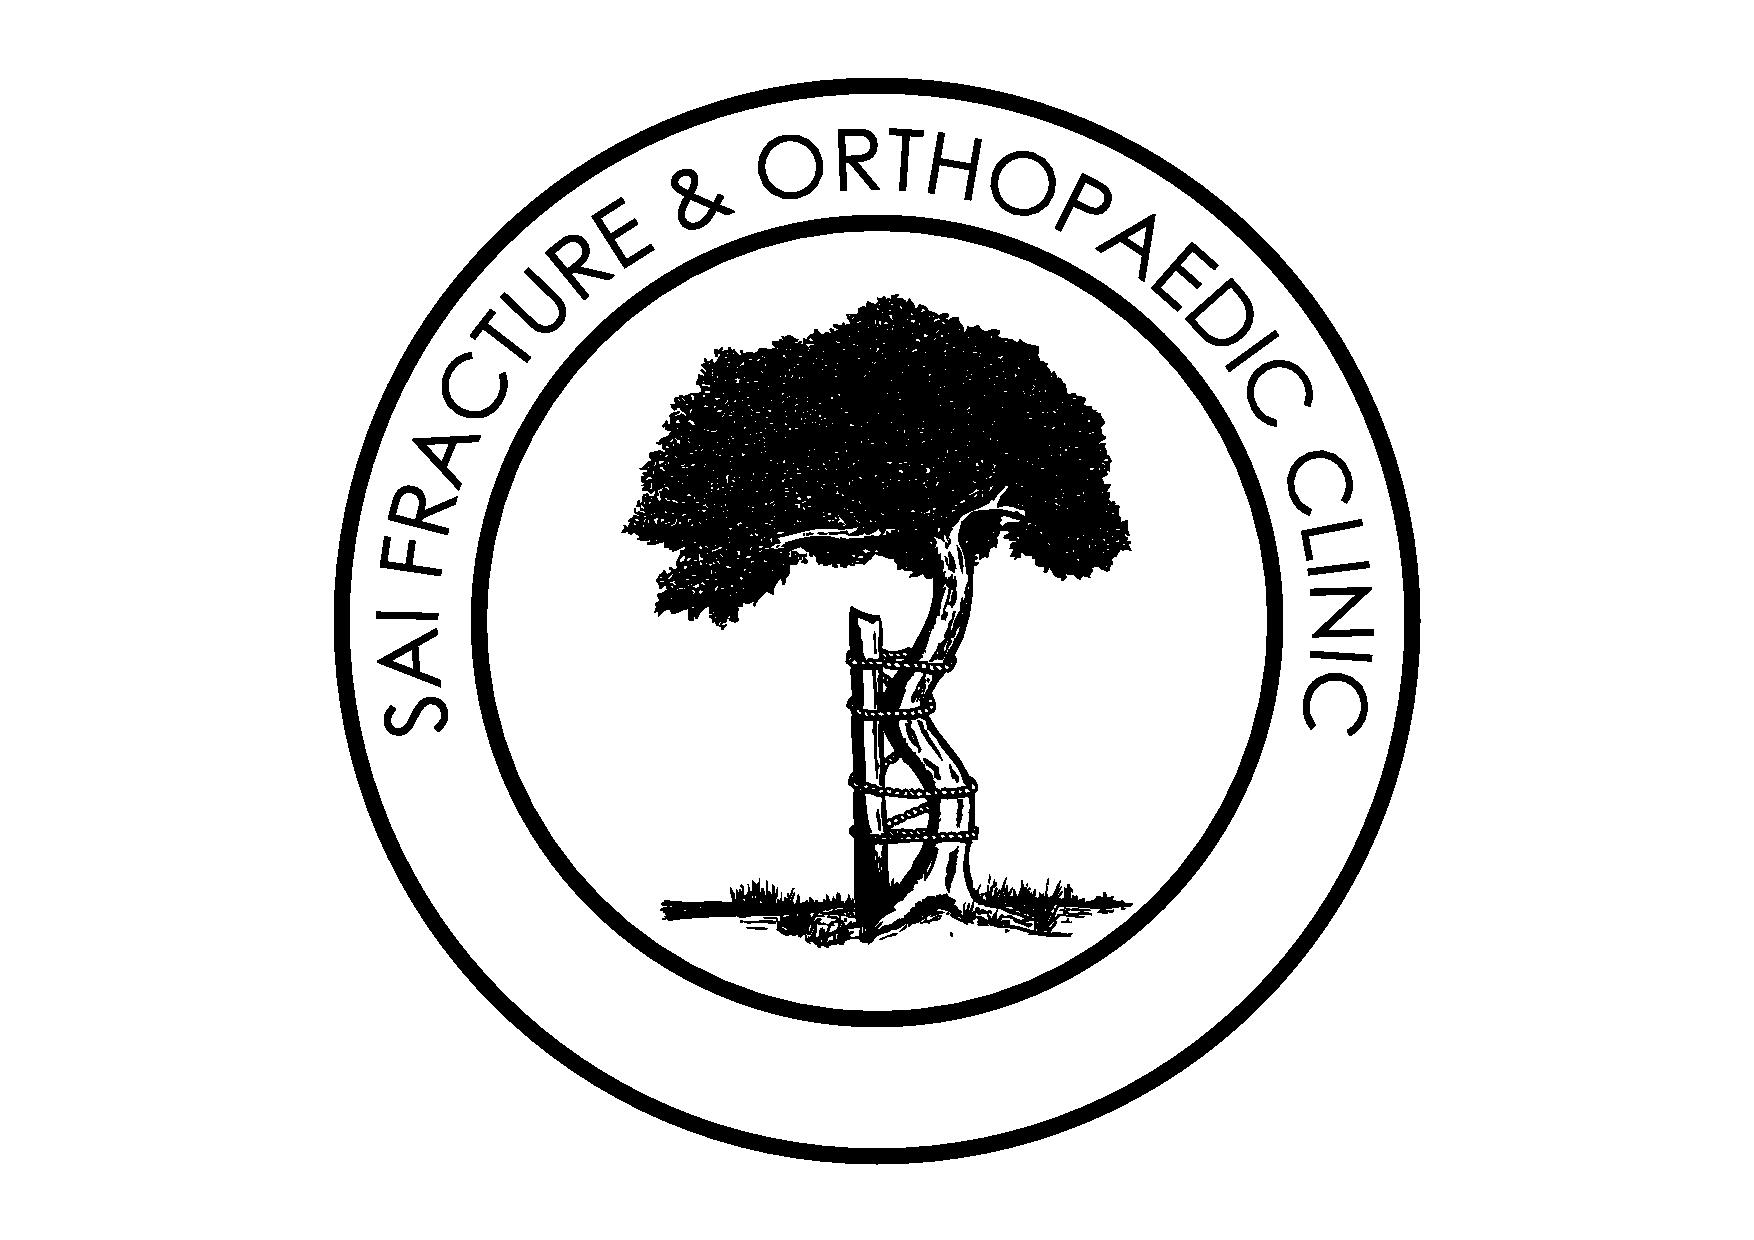 Sai Fracture & Orthopedic Clinic